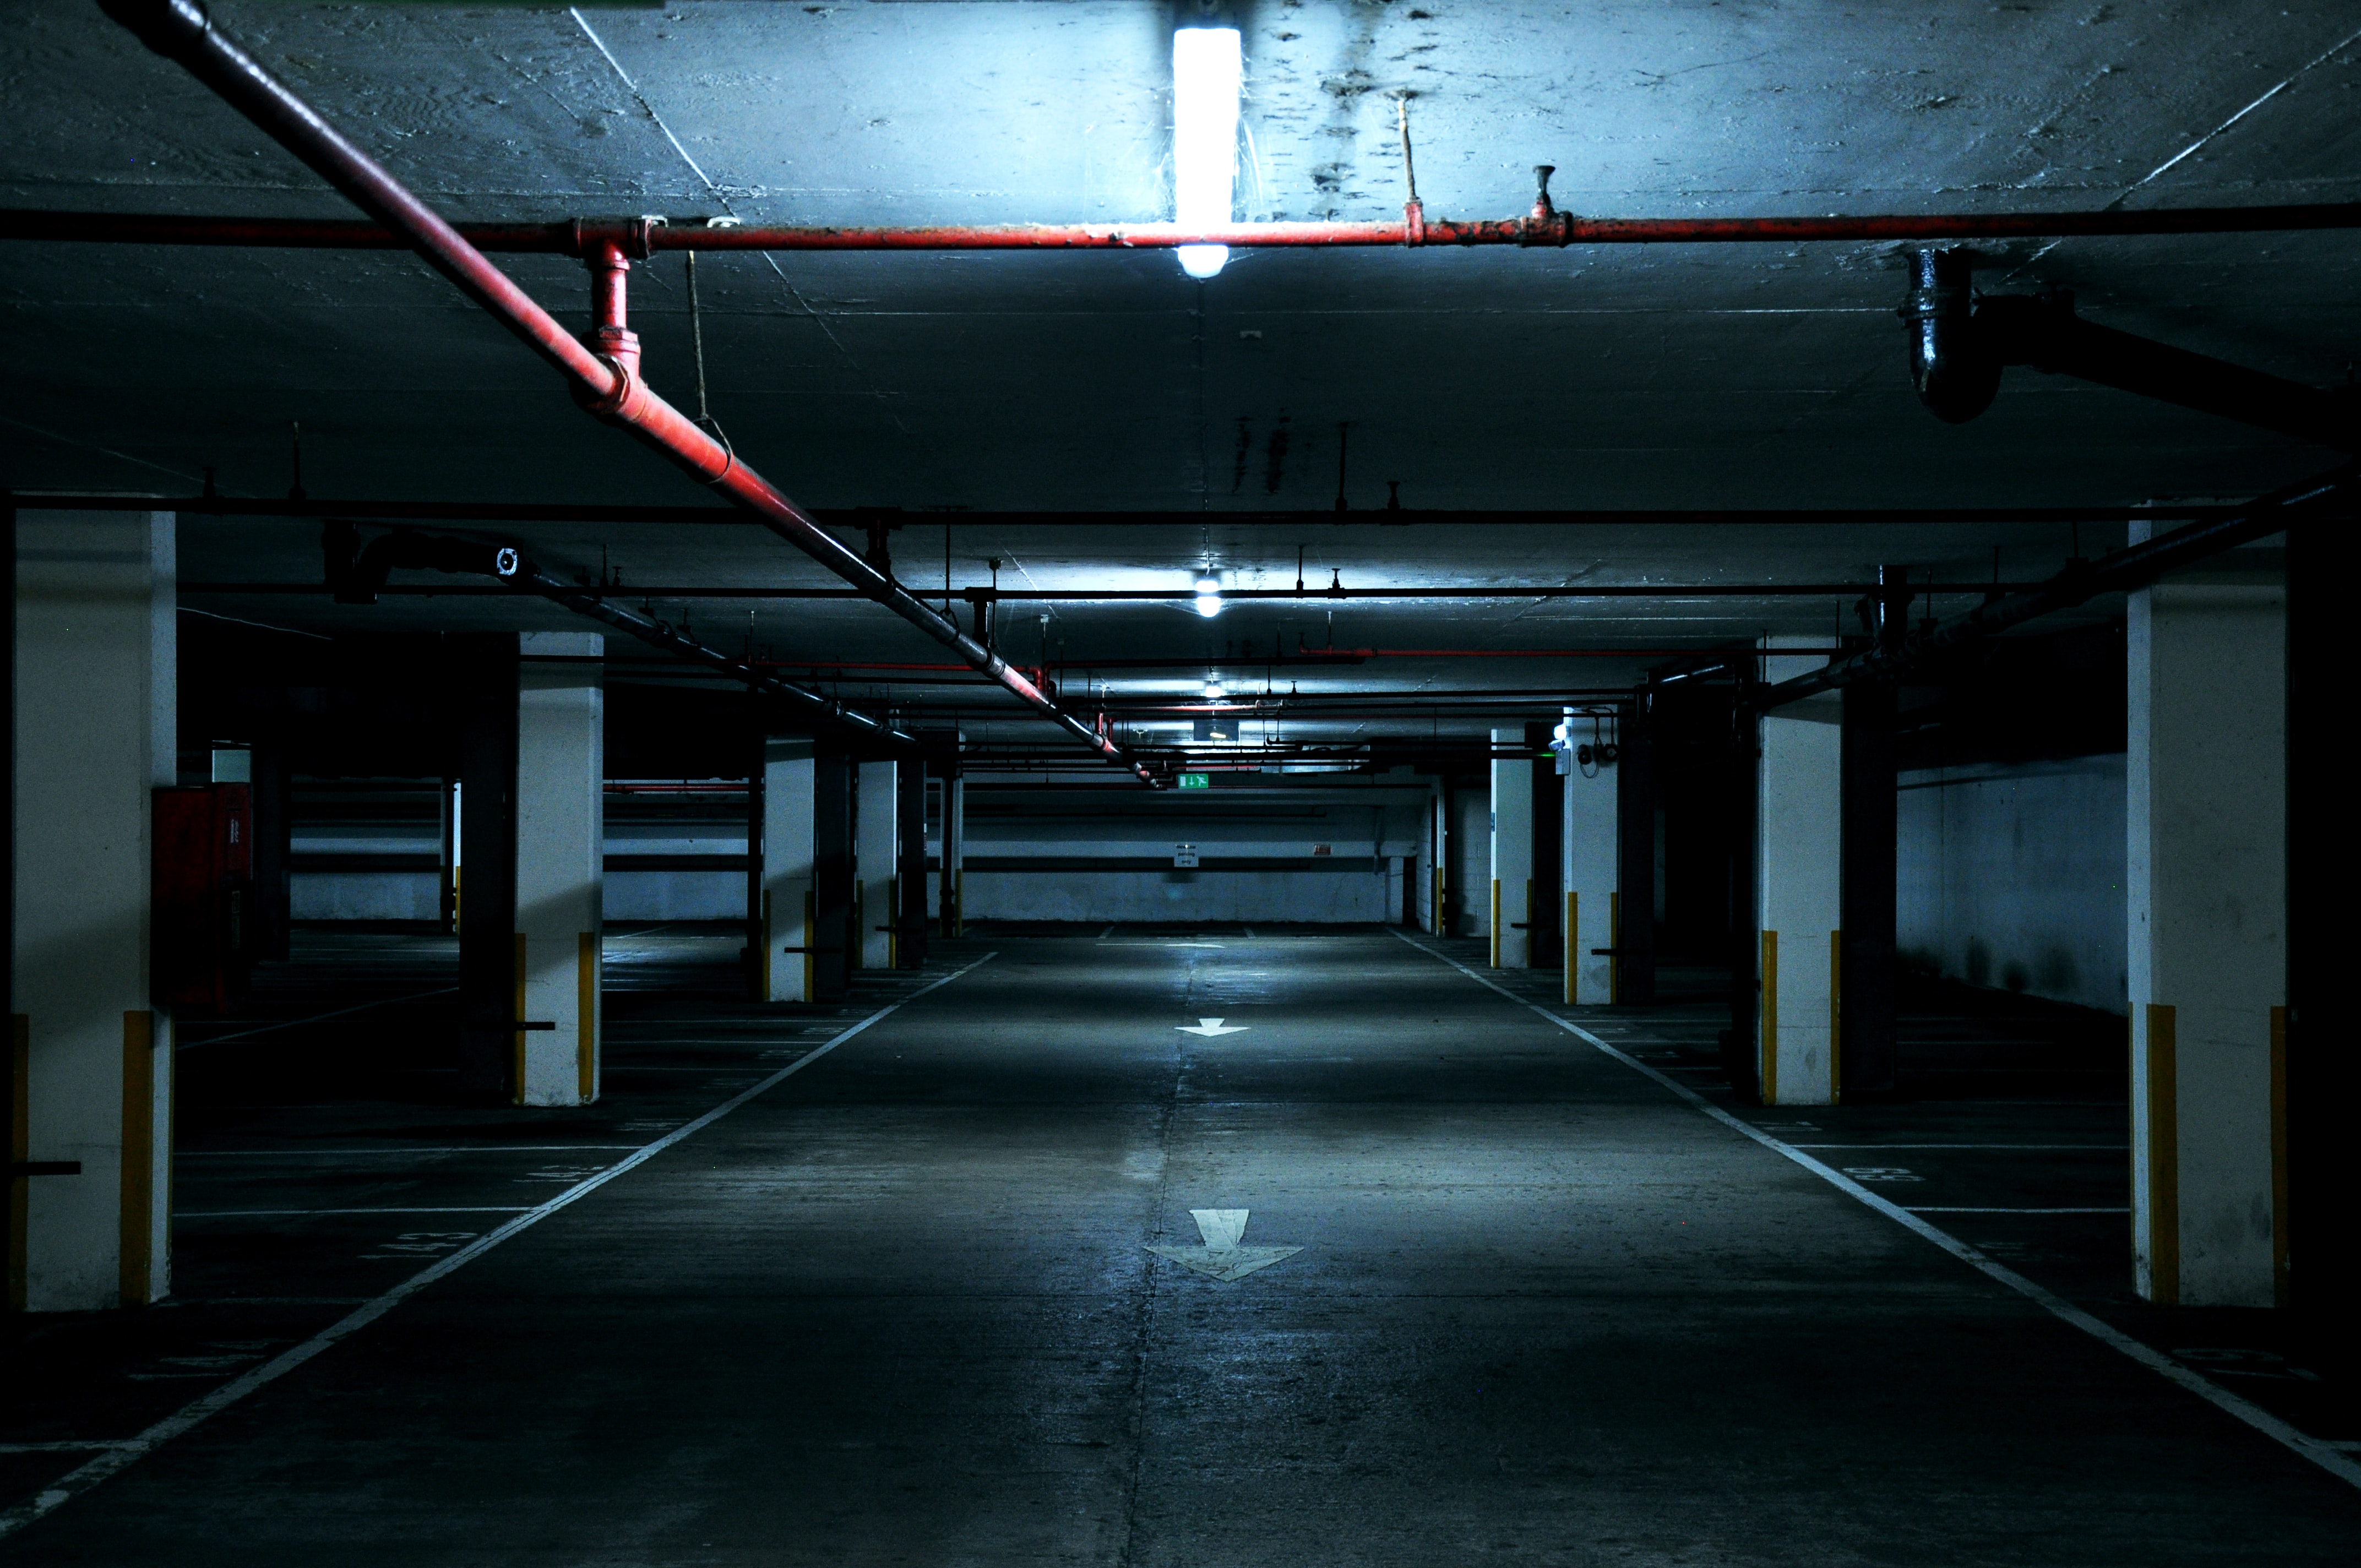 An underground empty urban industrial dark parking lot with fluorescent light over it in landmark place